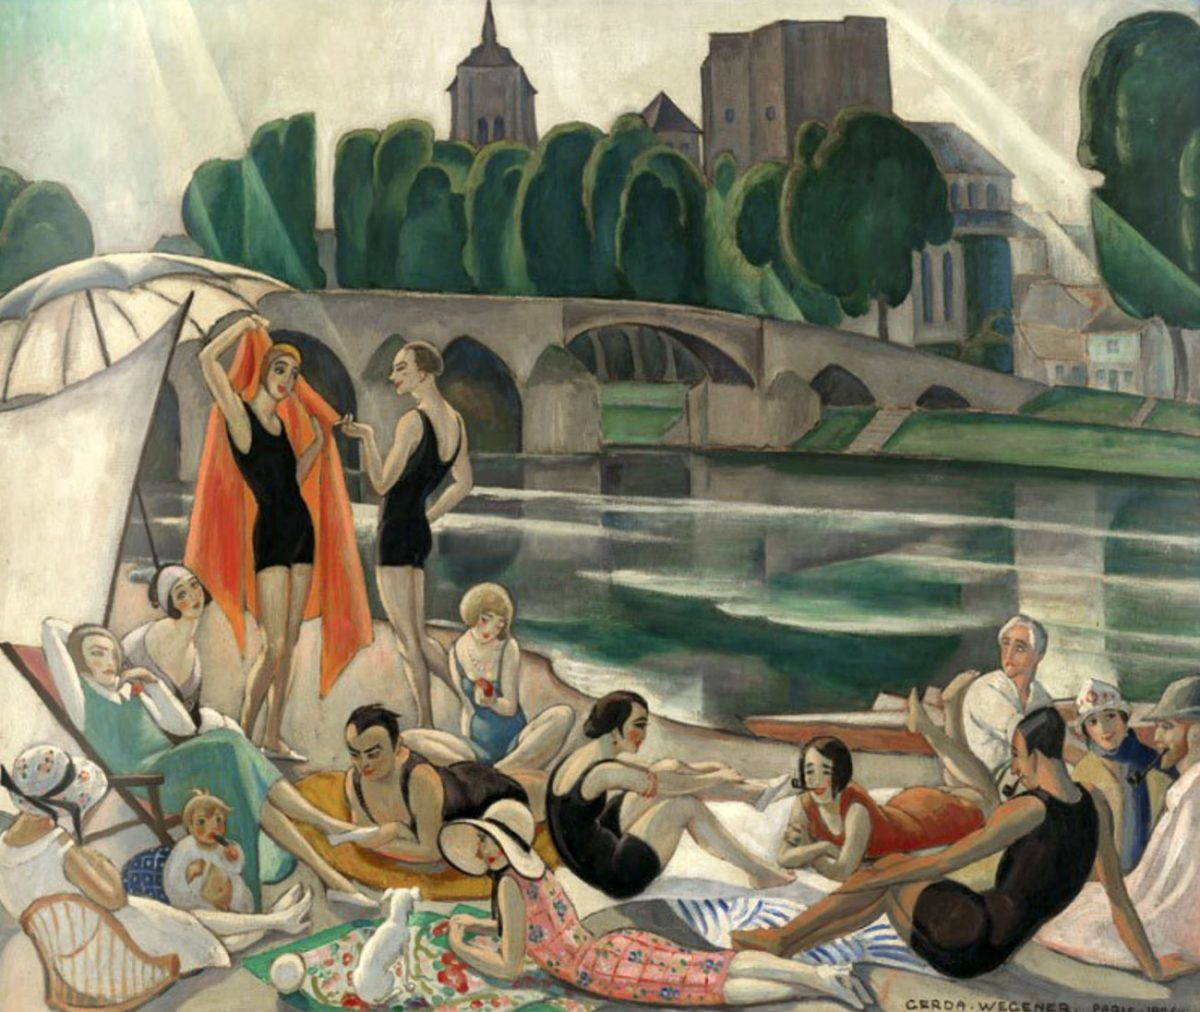 Gerda Wegener (1885-1940) On the banks of the Loire (the artists' colony at Beaugency) Paris, 1926